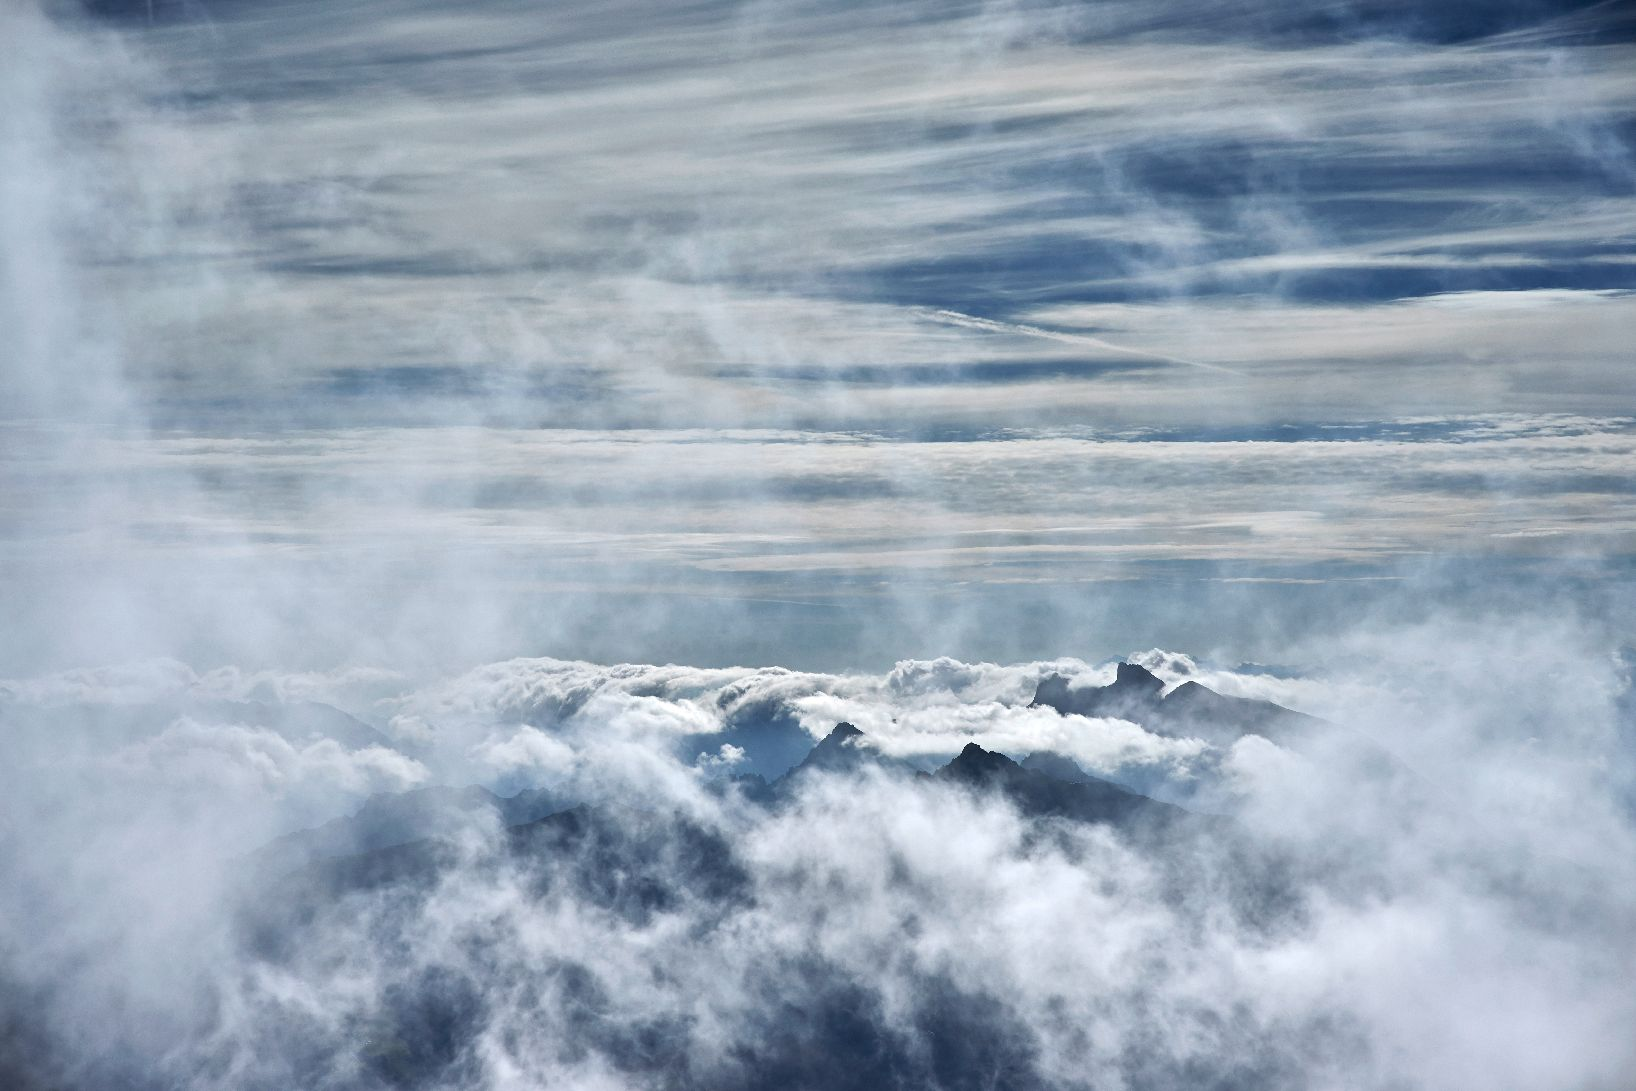 Clouds over mountain tops